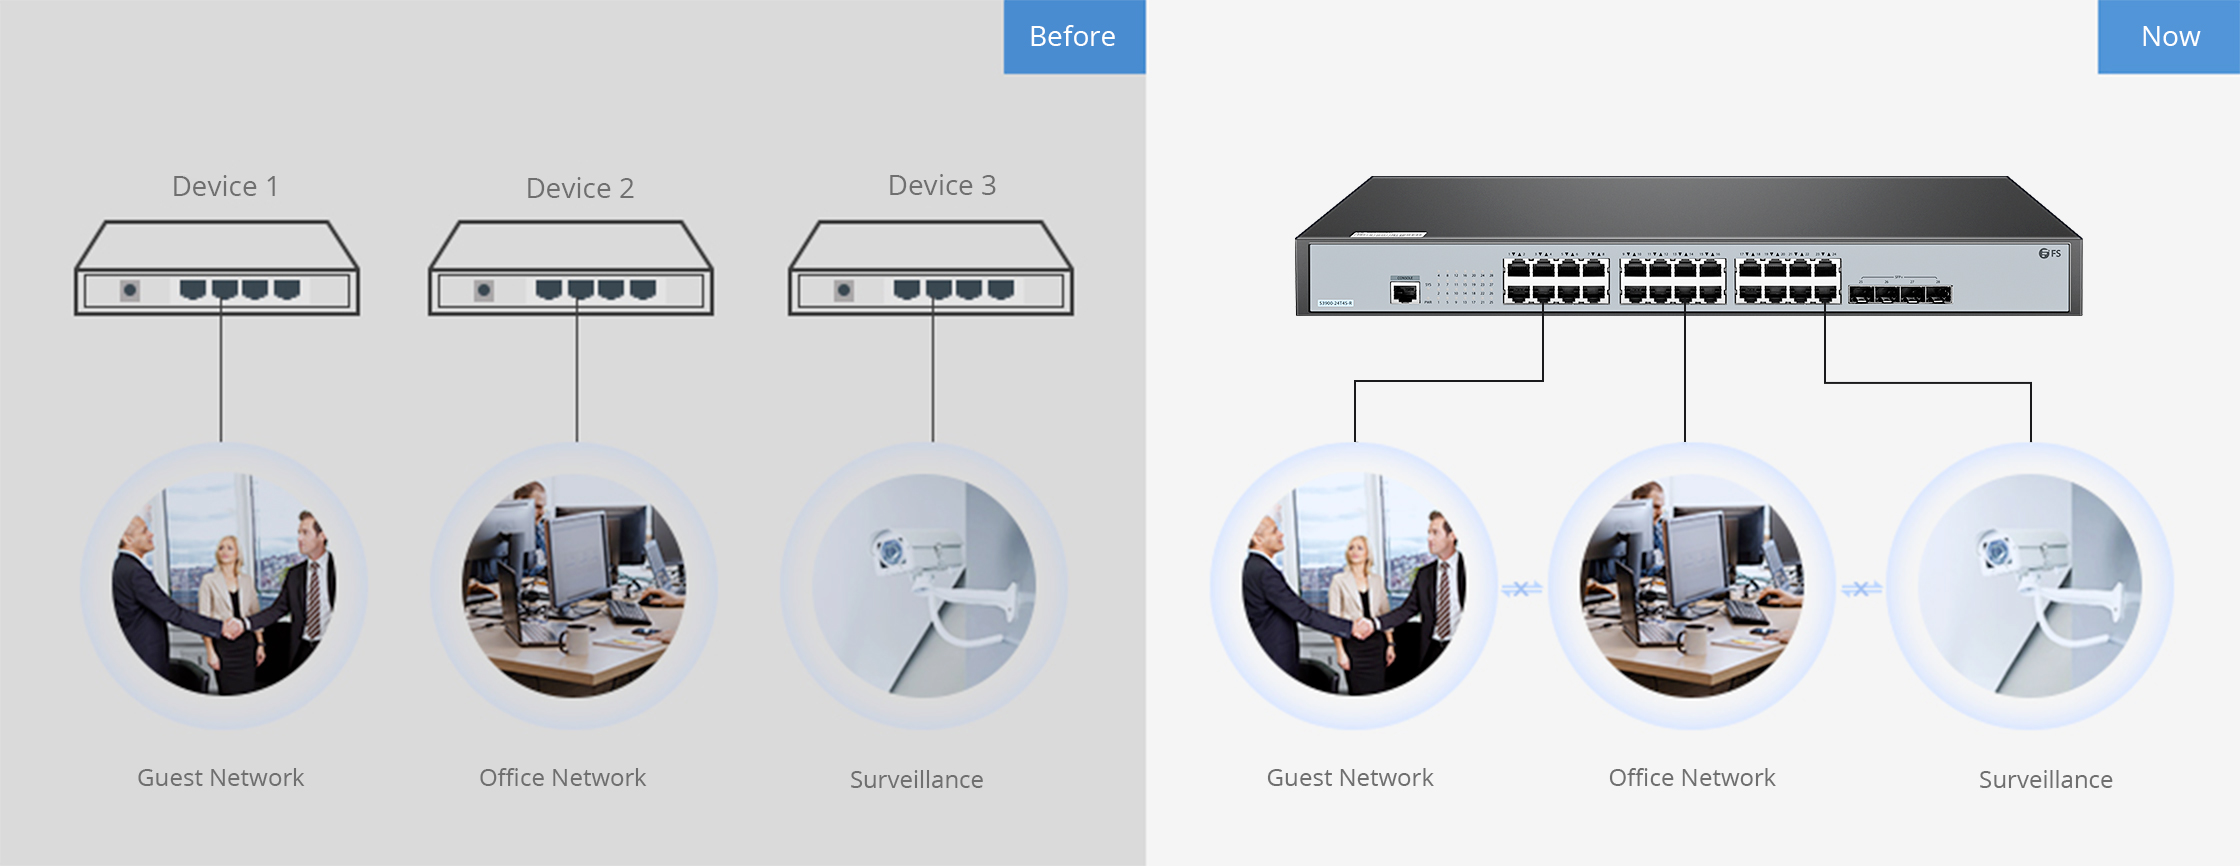 1G/10G Switches VLANs for Security and Cost-Saving